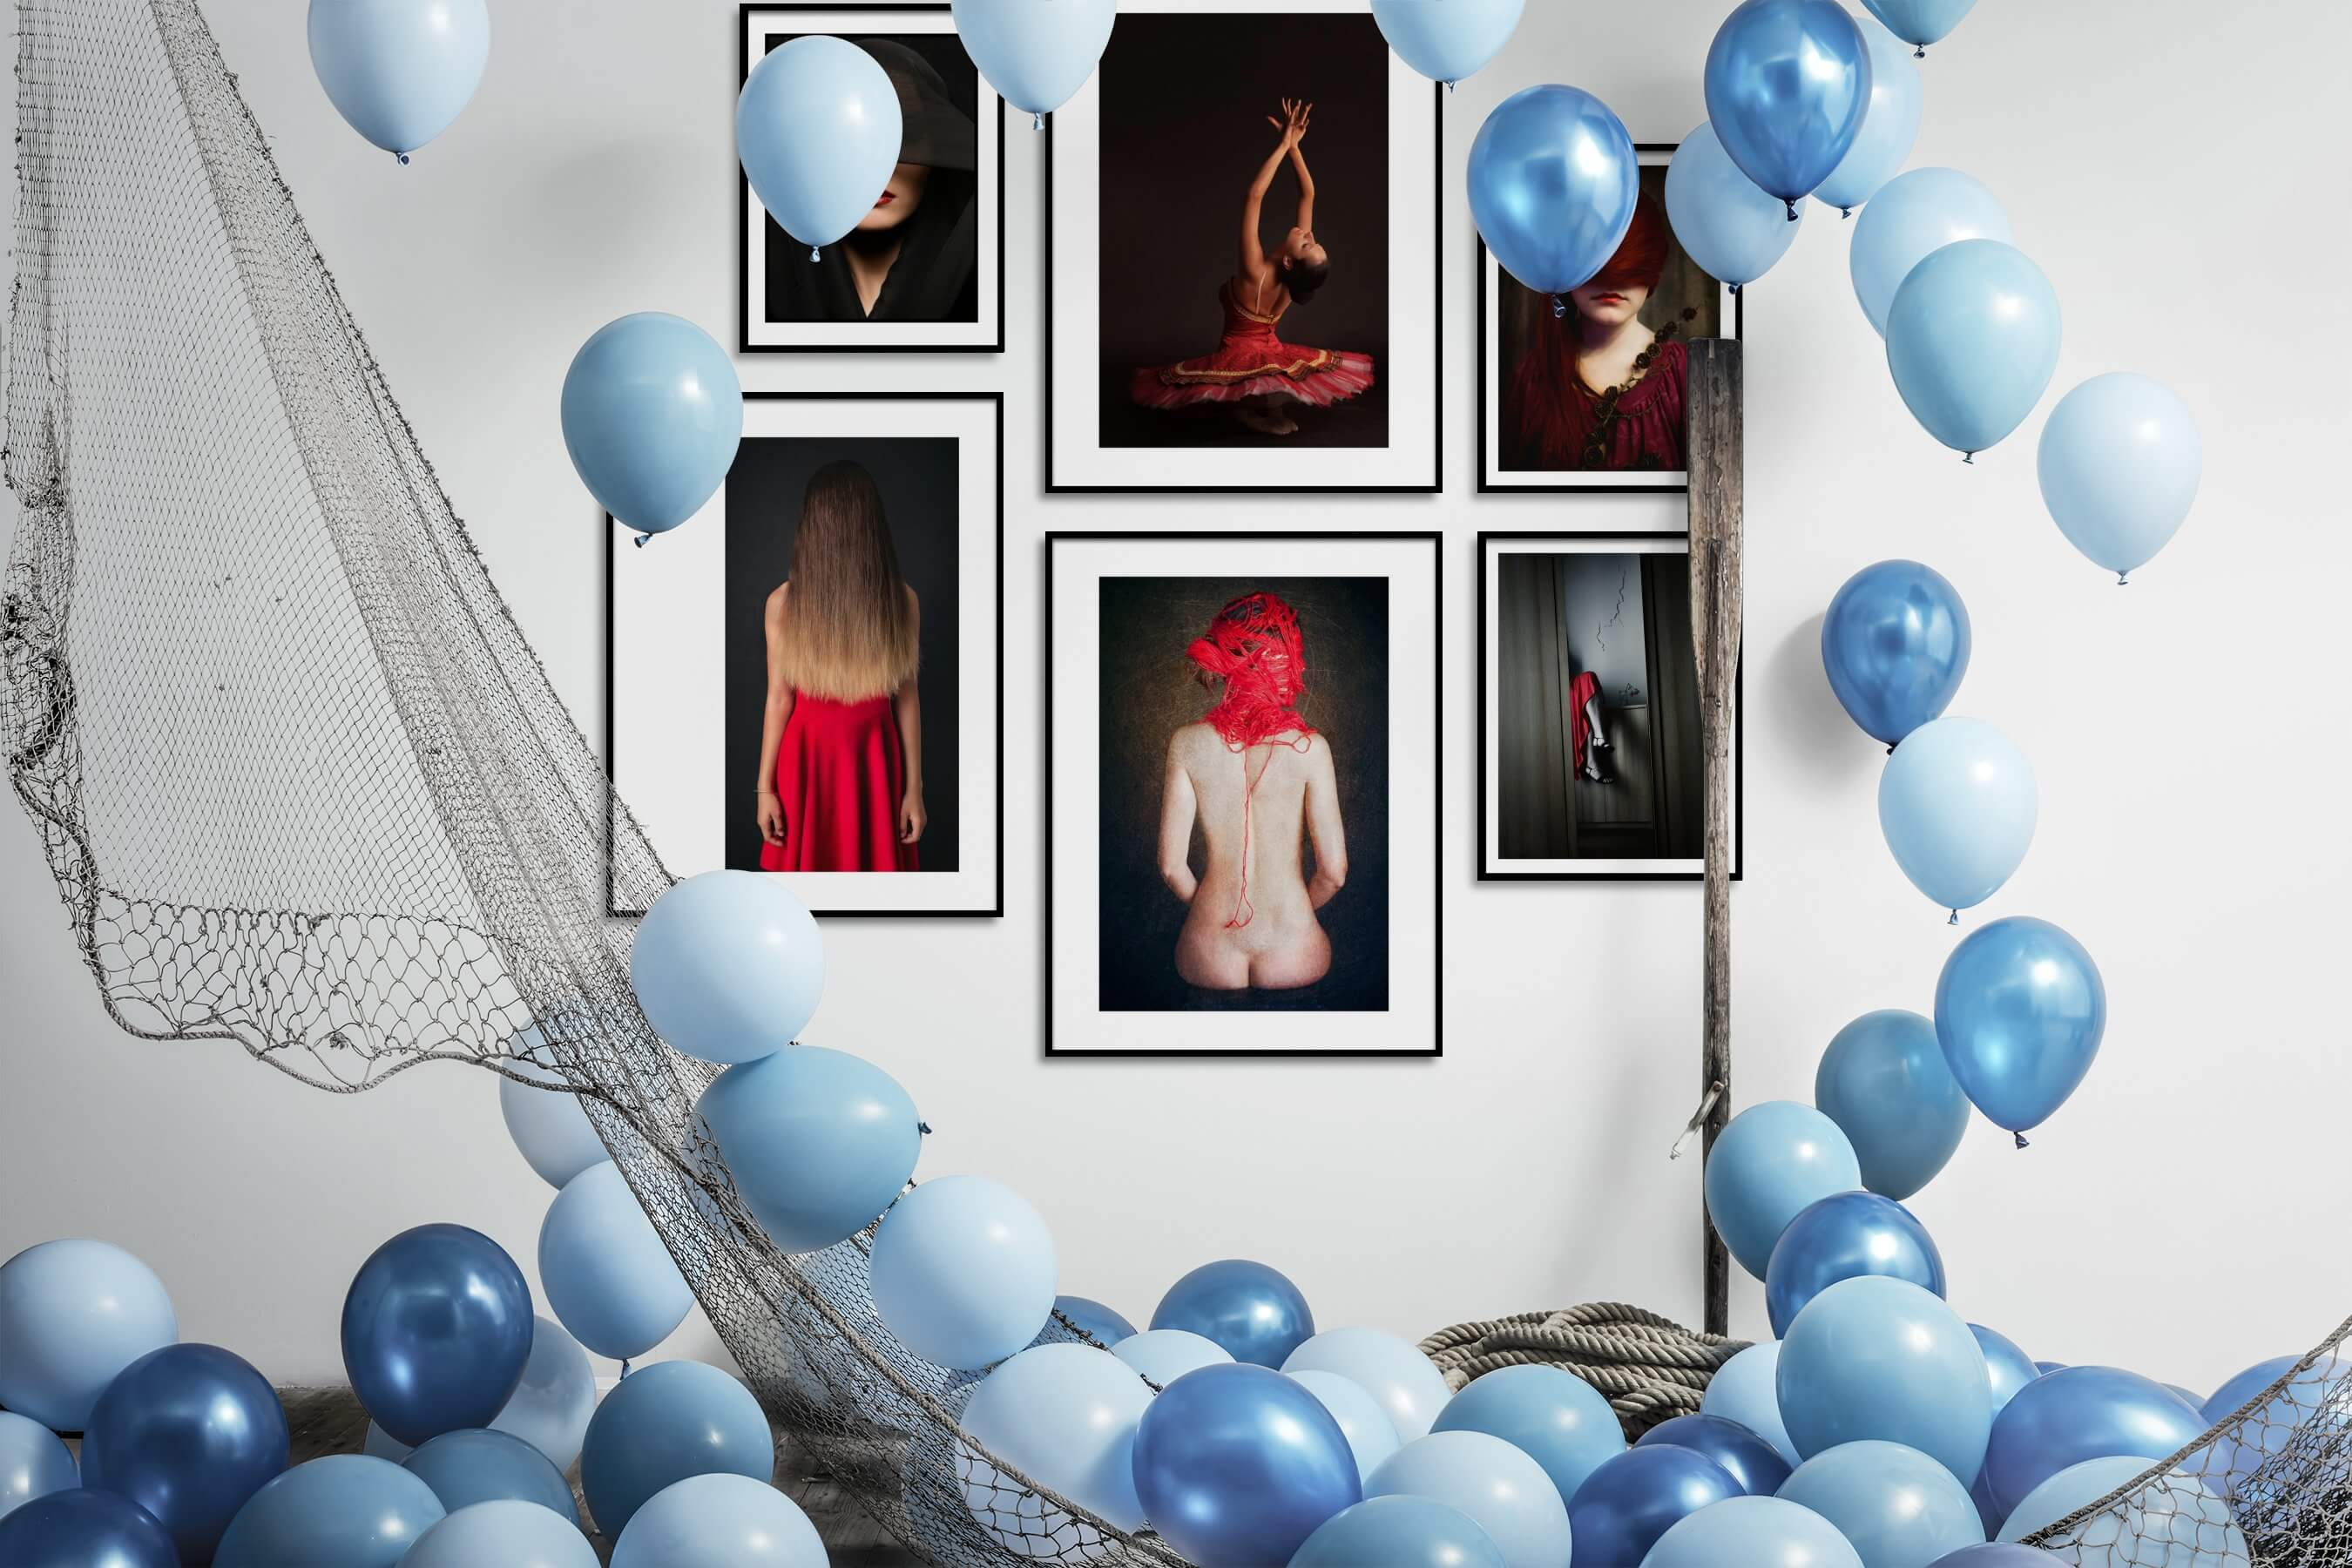 Gallery wall idea with six framed pictures arranged on a wall depicting Fashion & Beauty and Artsy